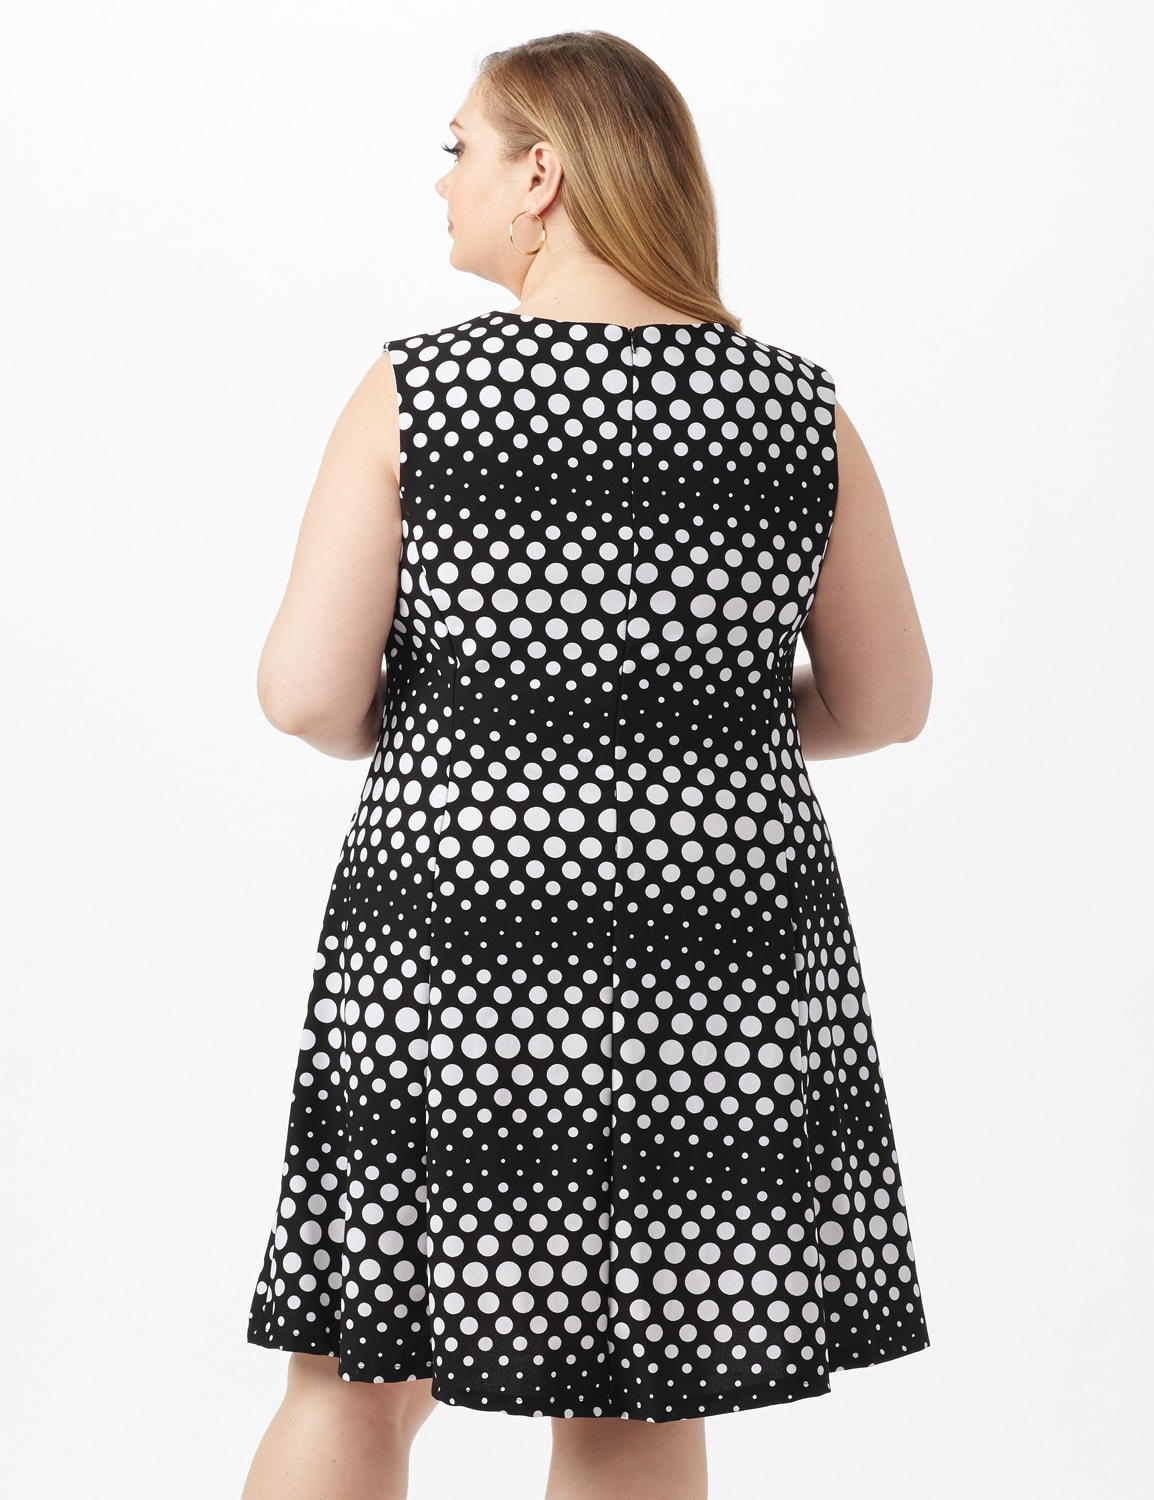 Dotted Stripe Fit and Flare Scuba Dress - Black/White - Back